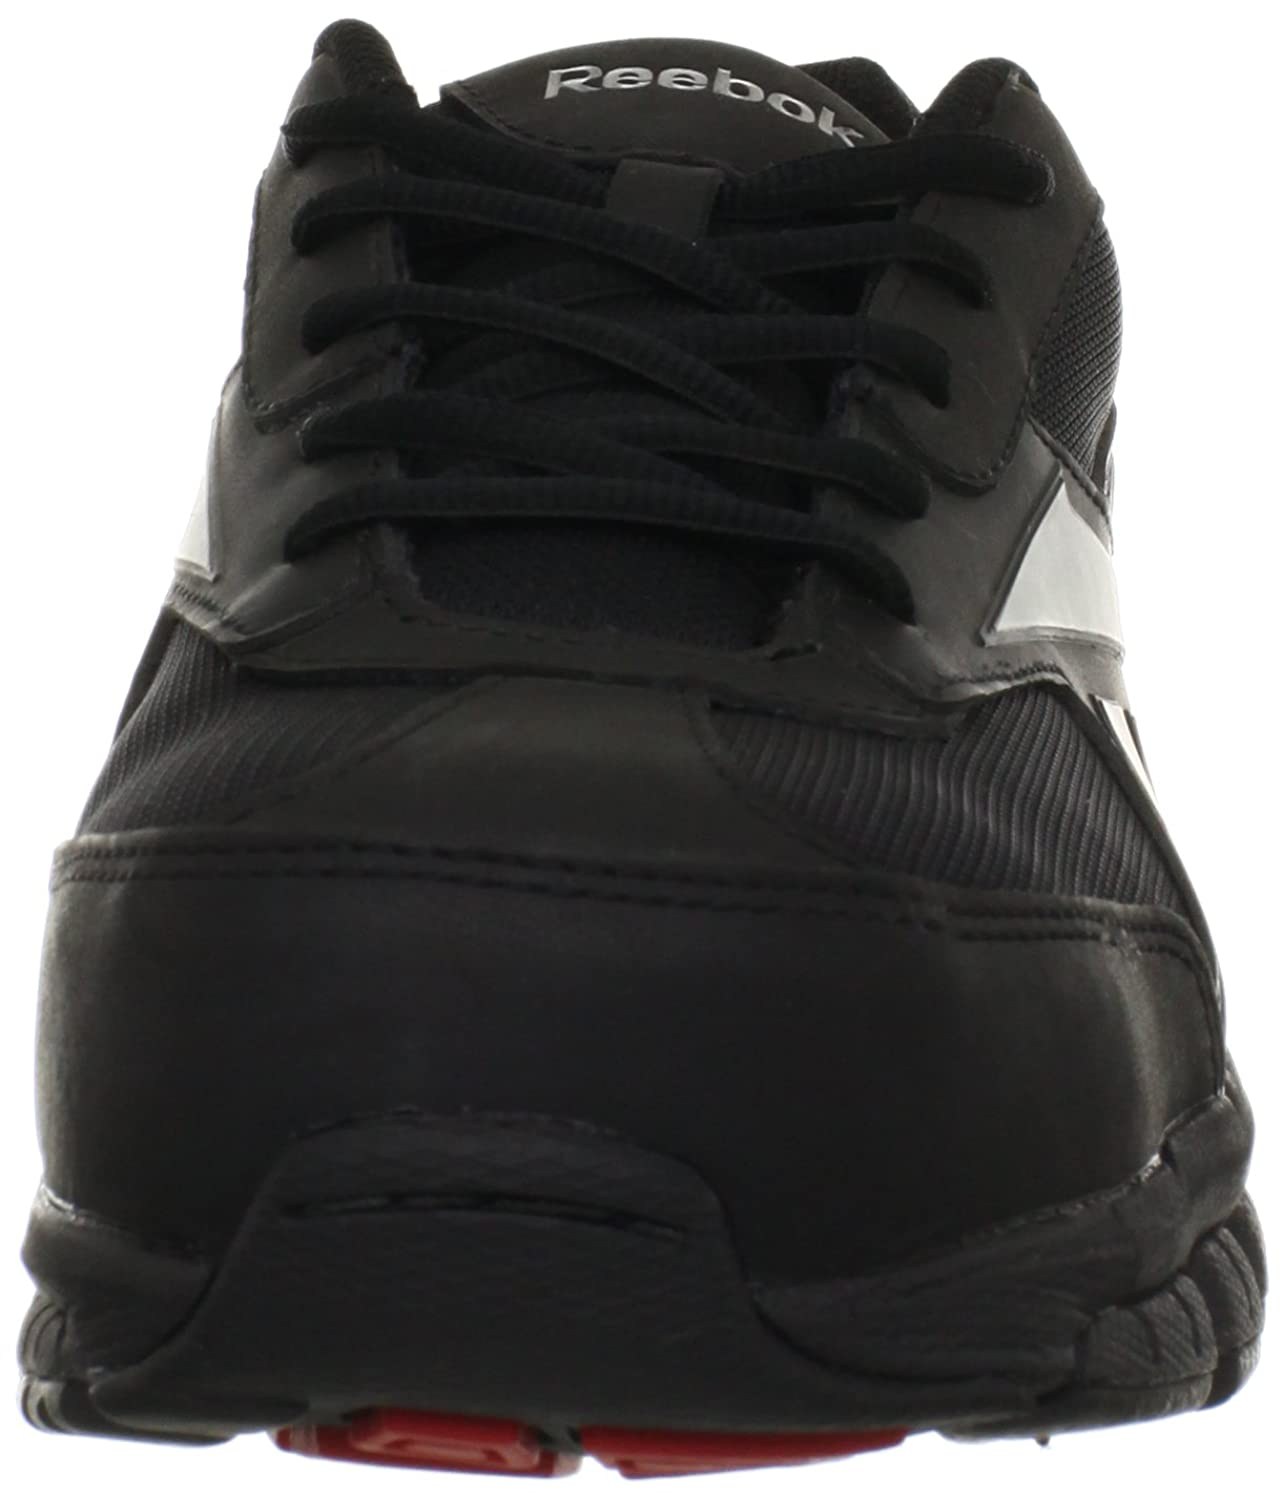 converse comp work large floors concrete shoe shoes composite best eh sport lightweight midhi for extralarge toe